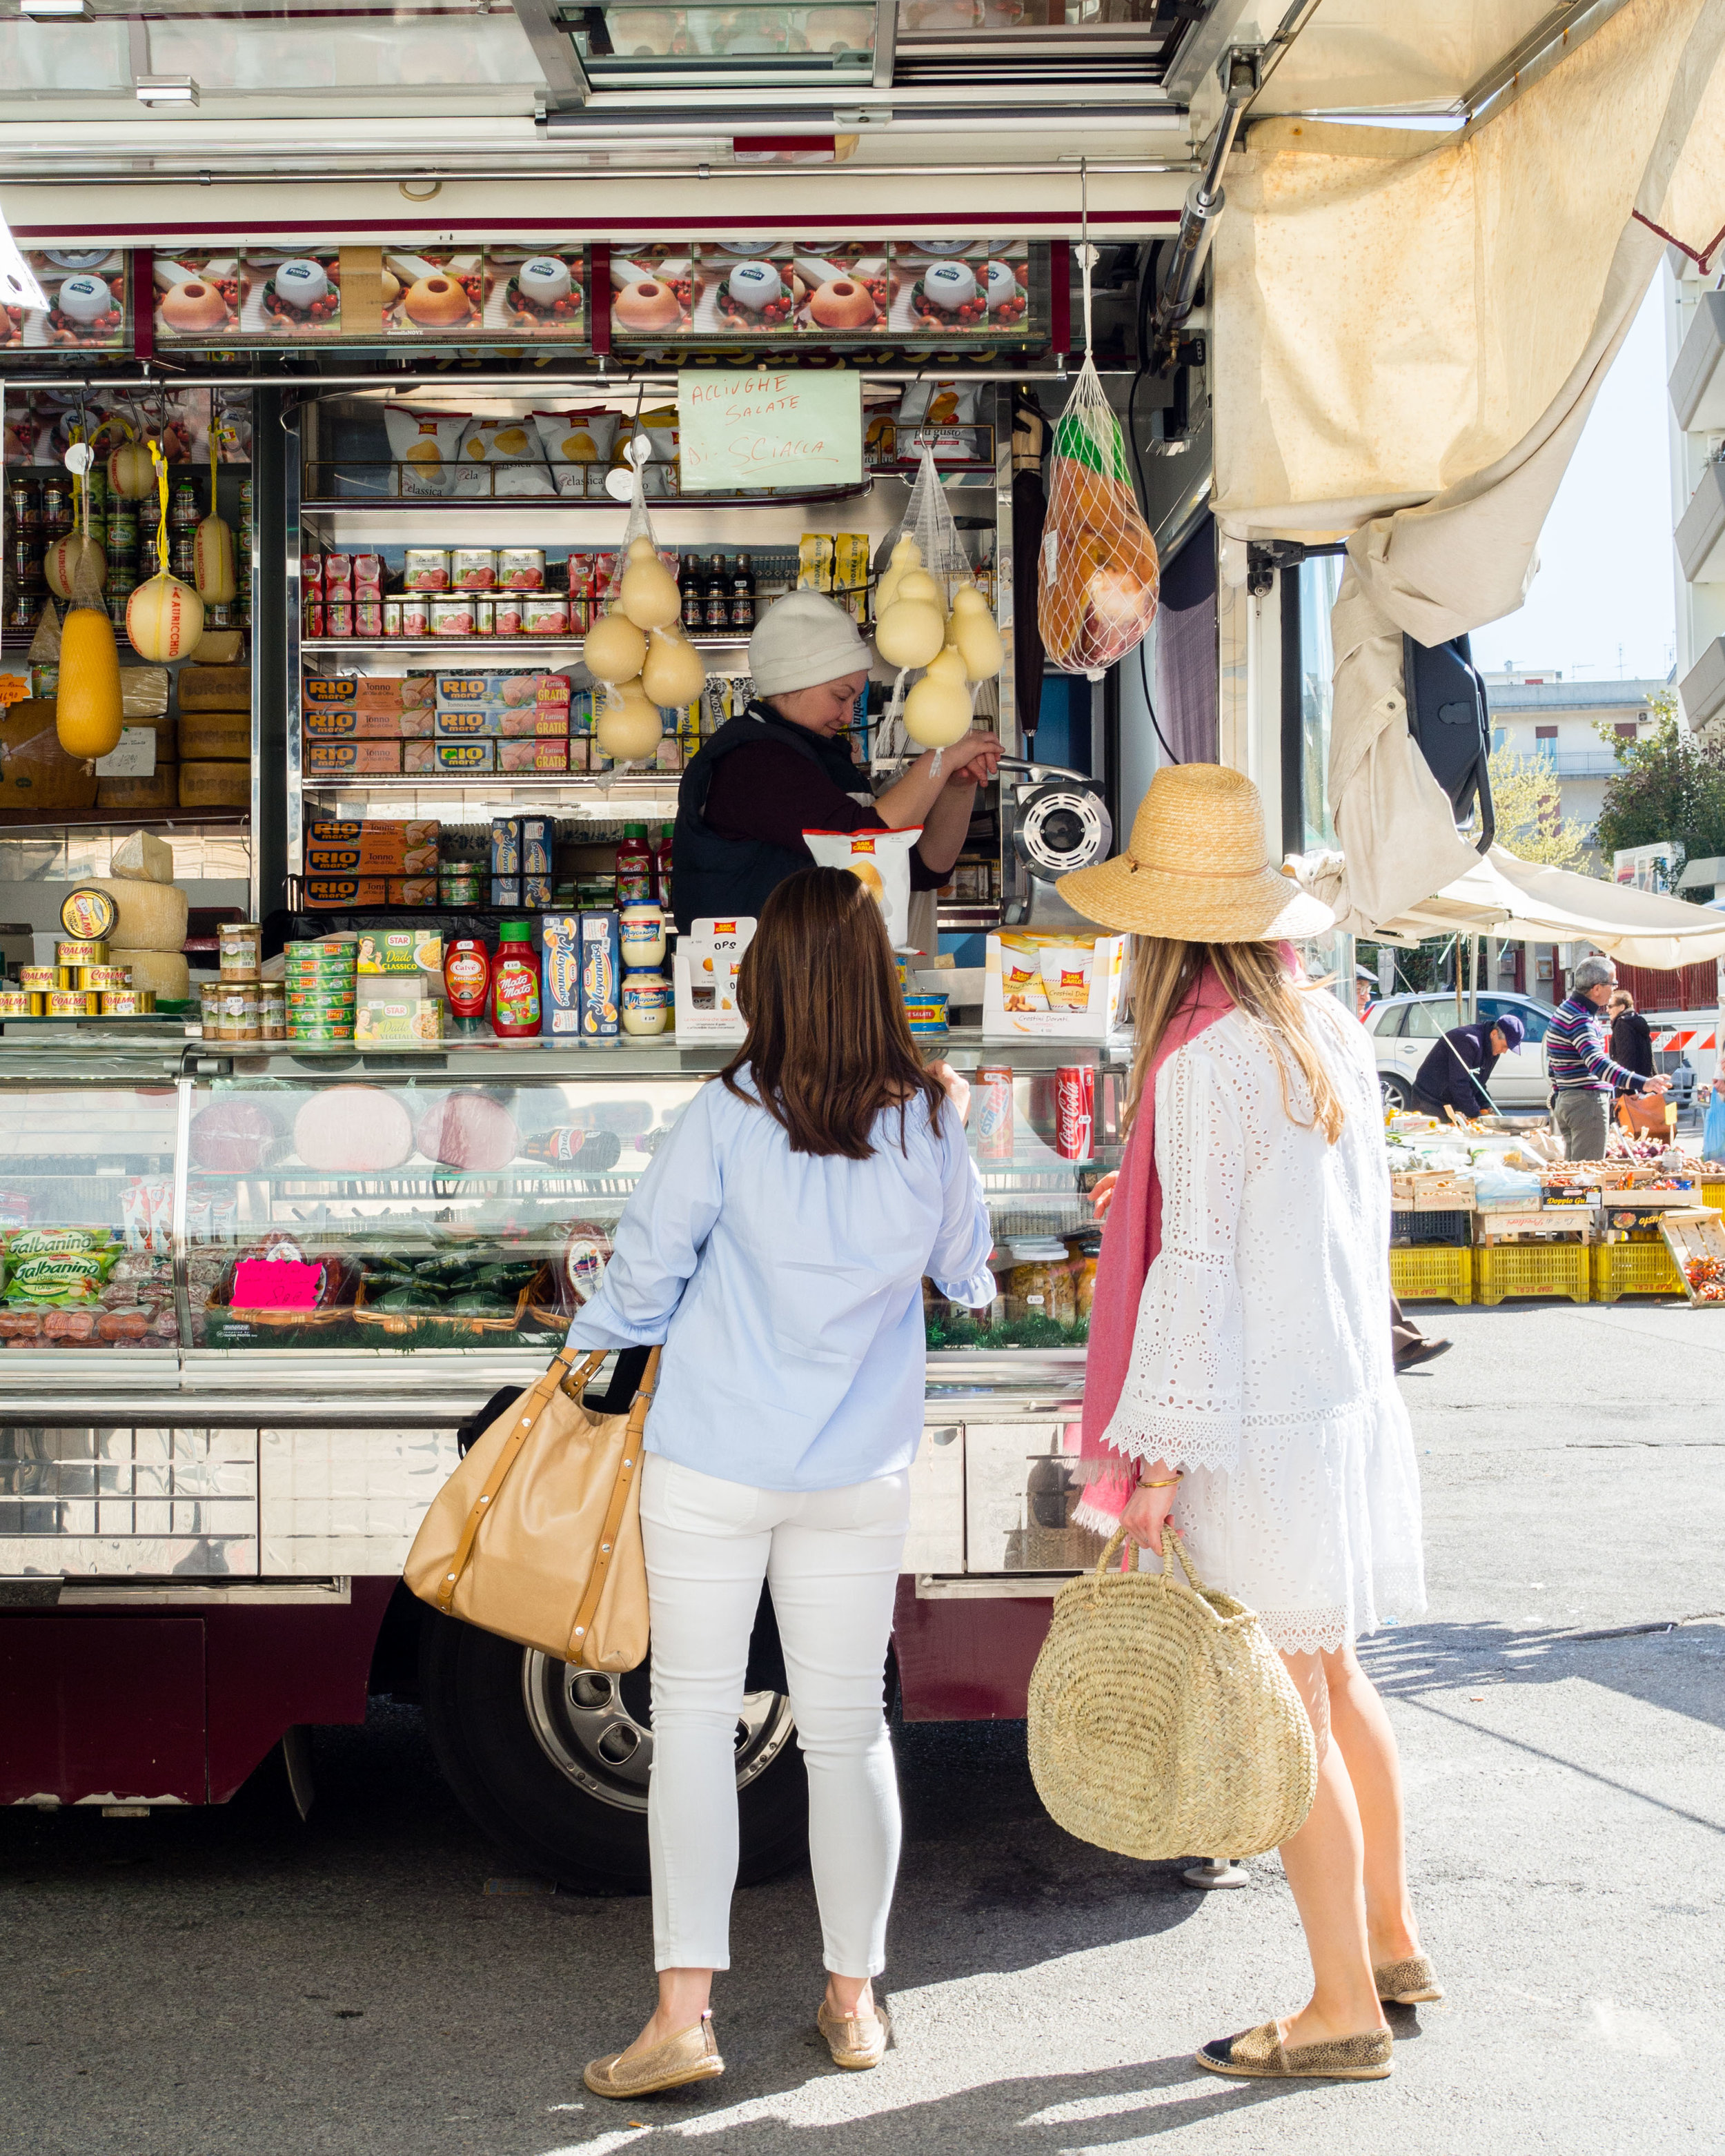 5 Italian Markets you must visit by Lois Avery